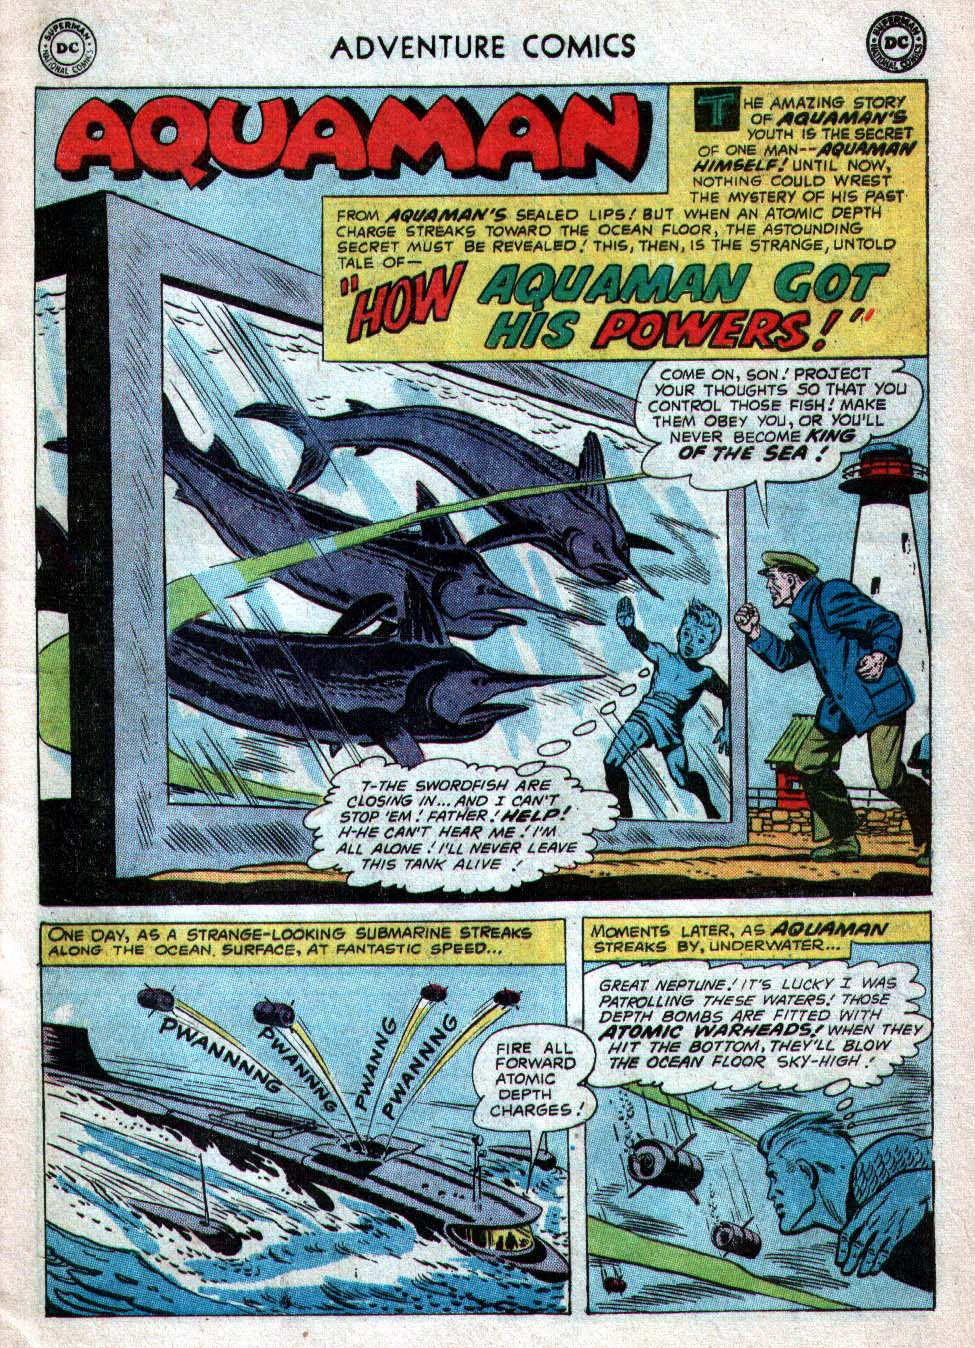 "ADVENTURE COMICS #260 - ""How Aquaman Got His Powers"", by Robert Bernstein and Ramona Fradon"